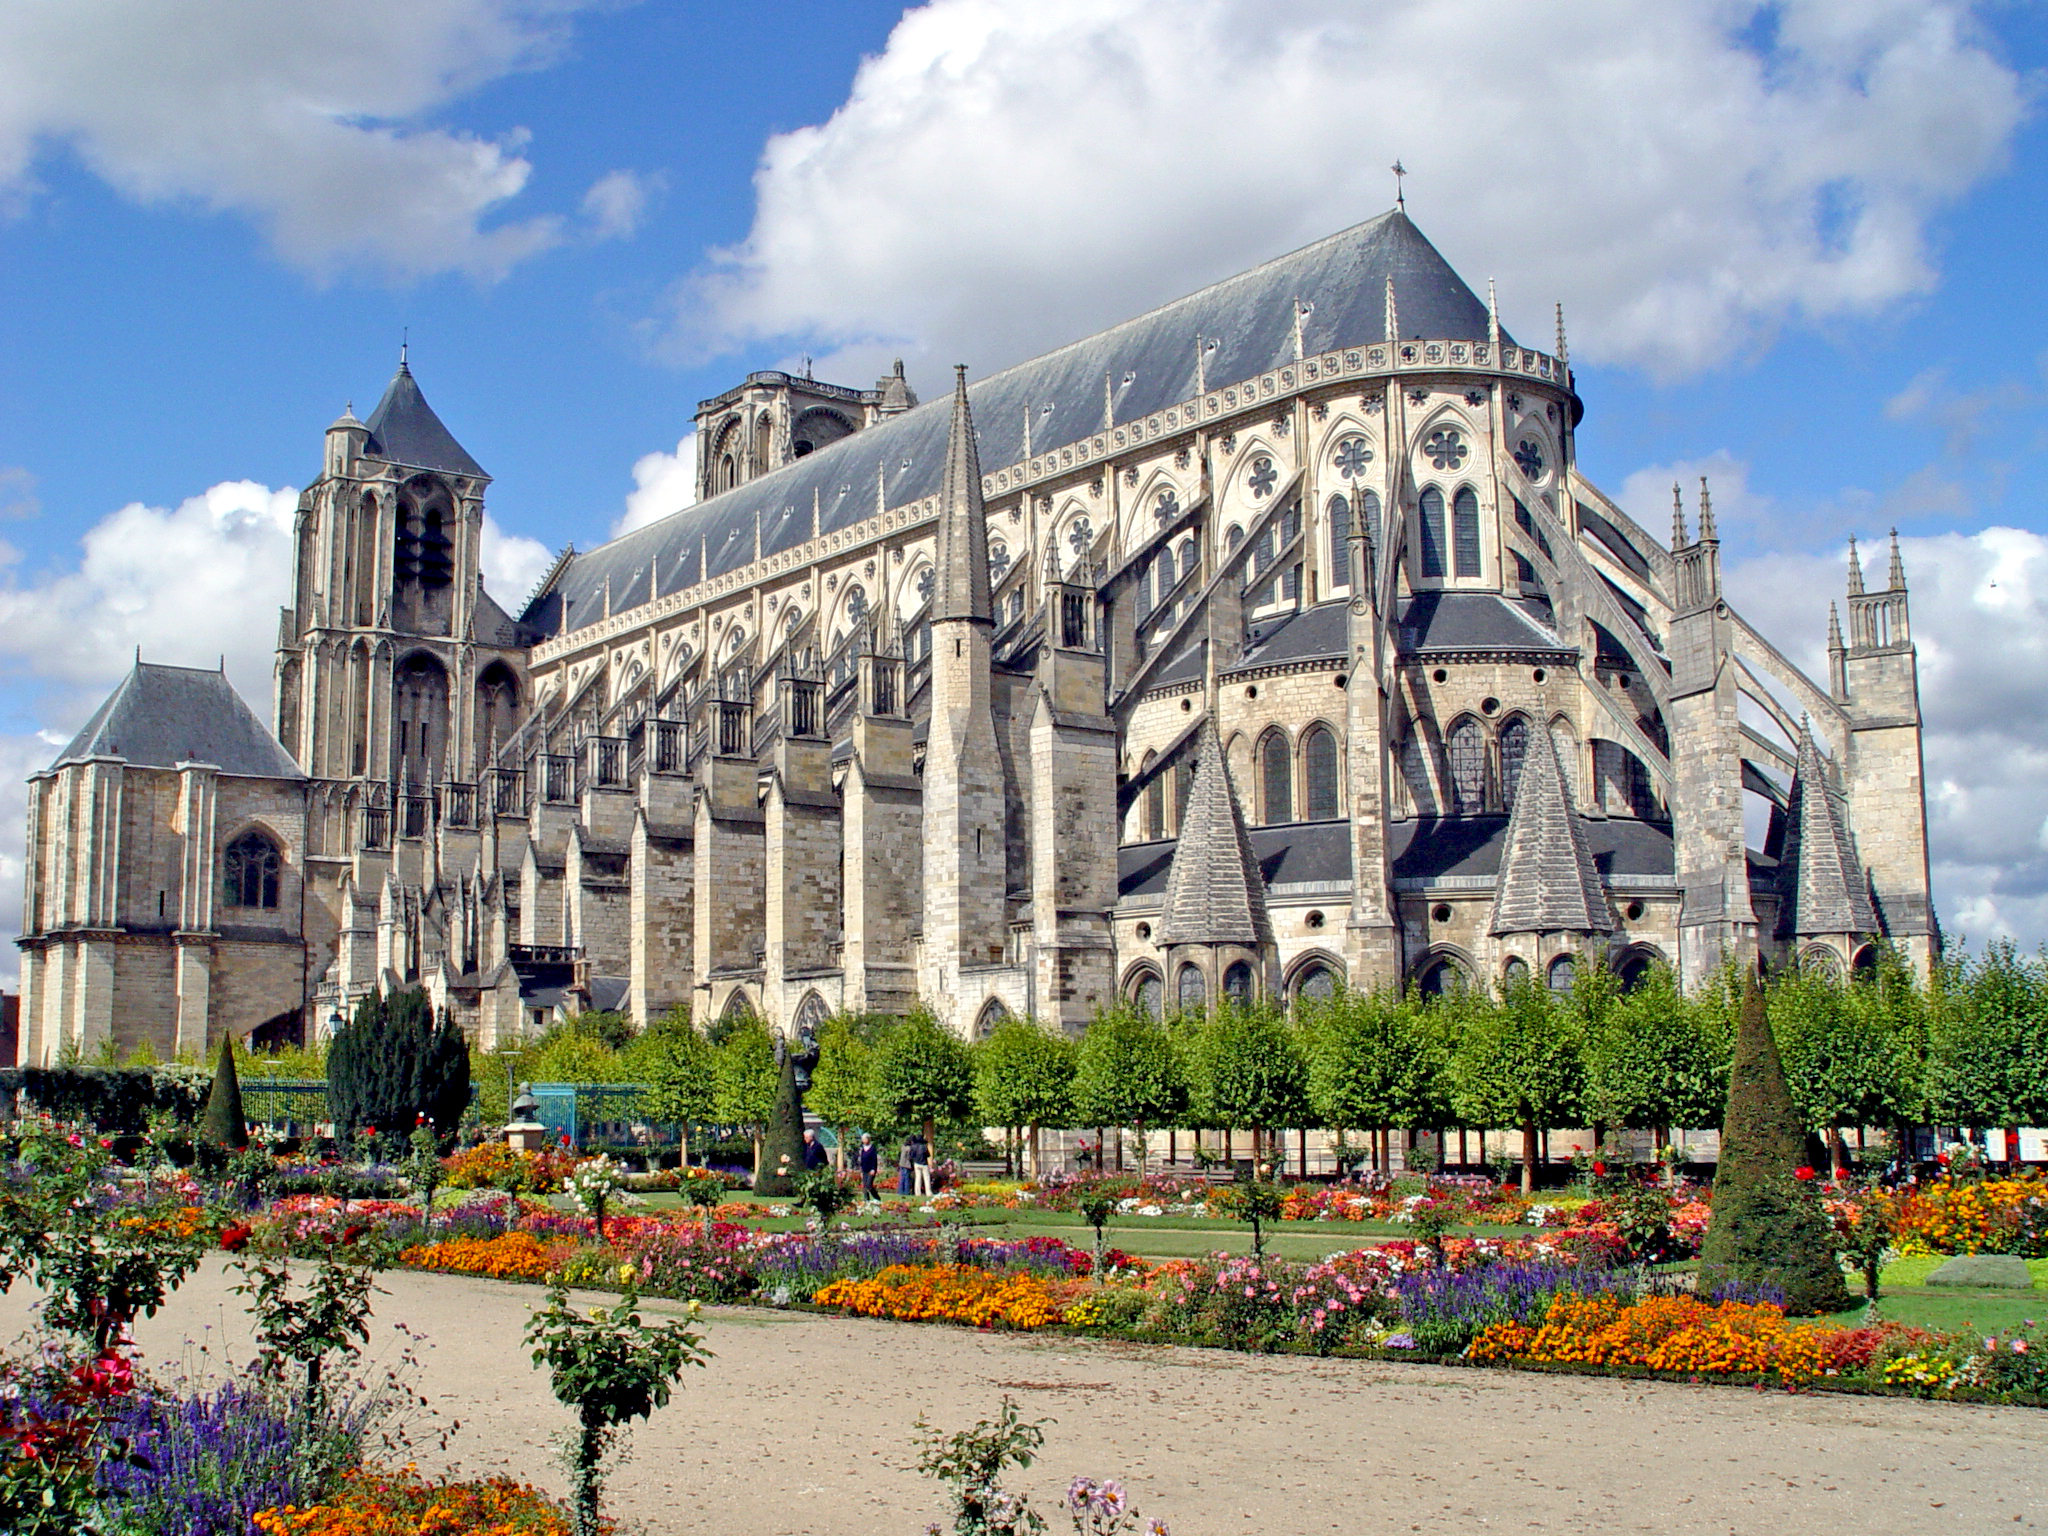 Bourges-Cathedral-by-Renaud-MAVRÉ-public-domain-from-Wikimedia-Commons.jpg